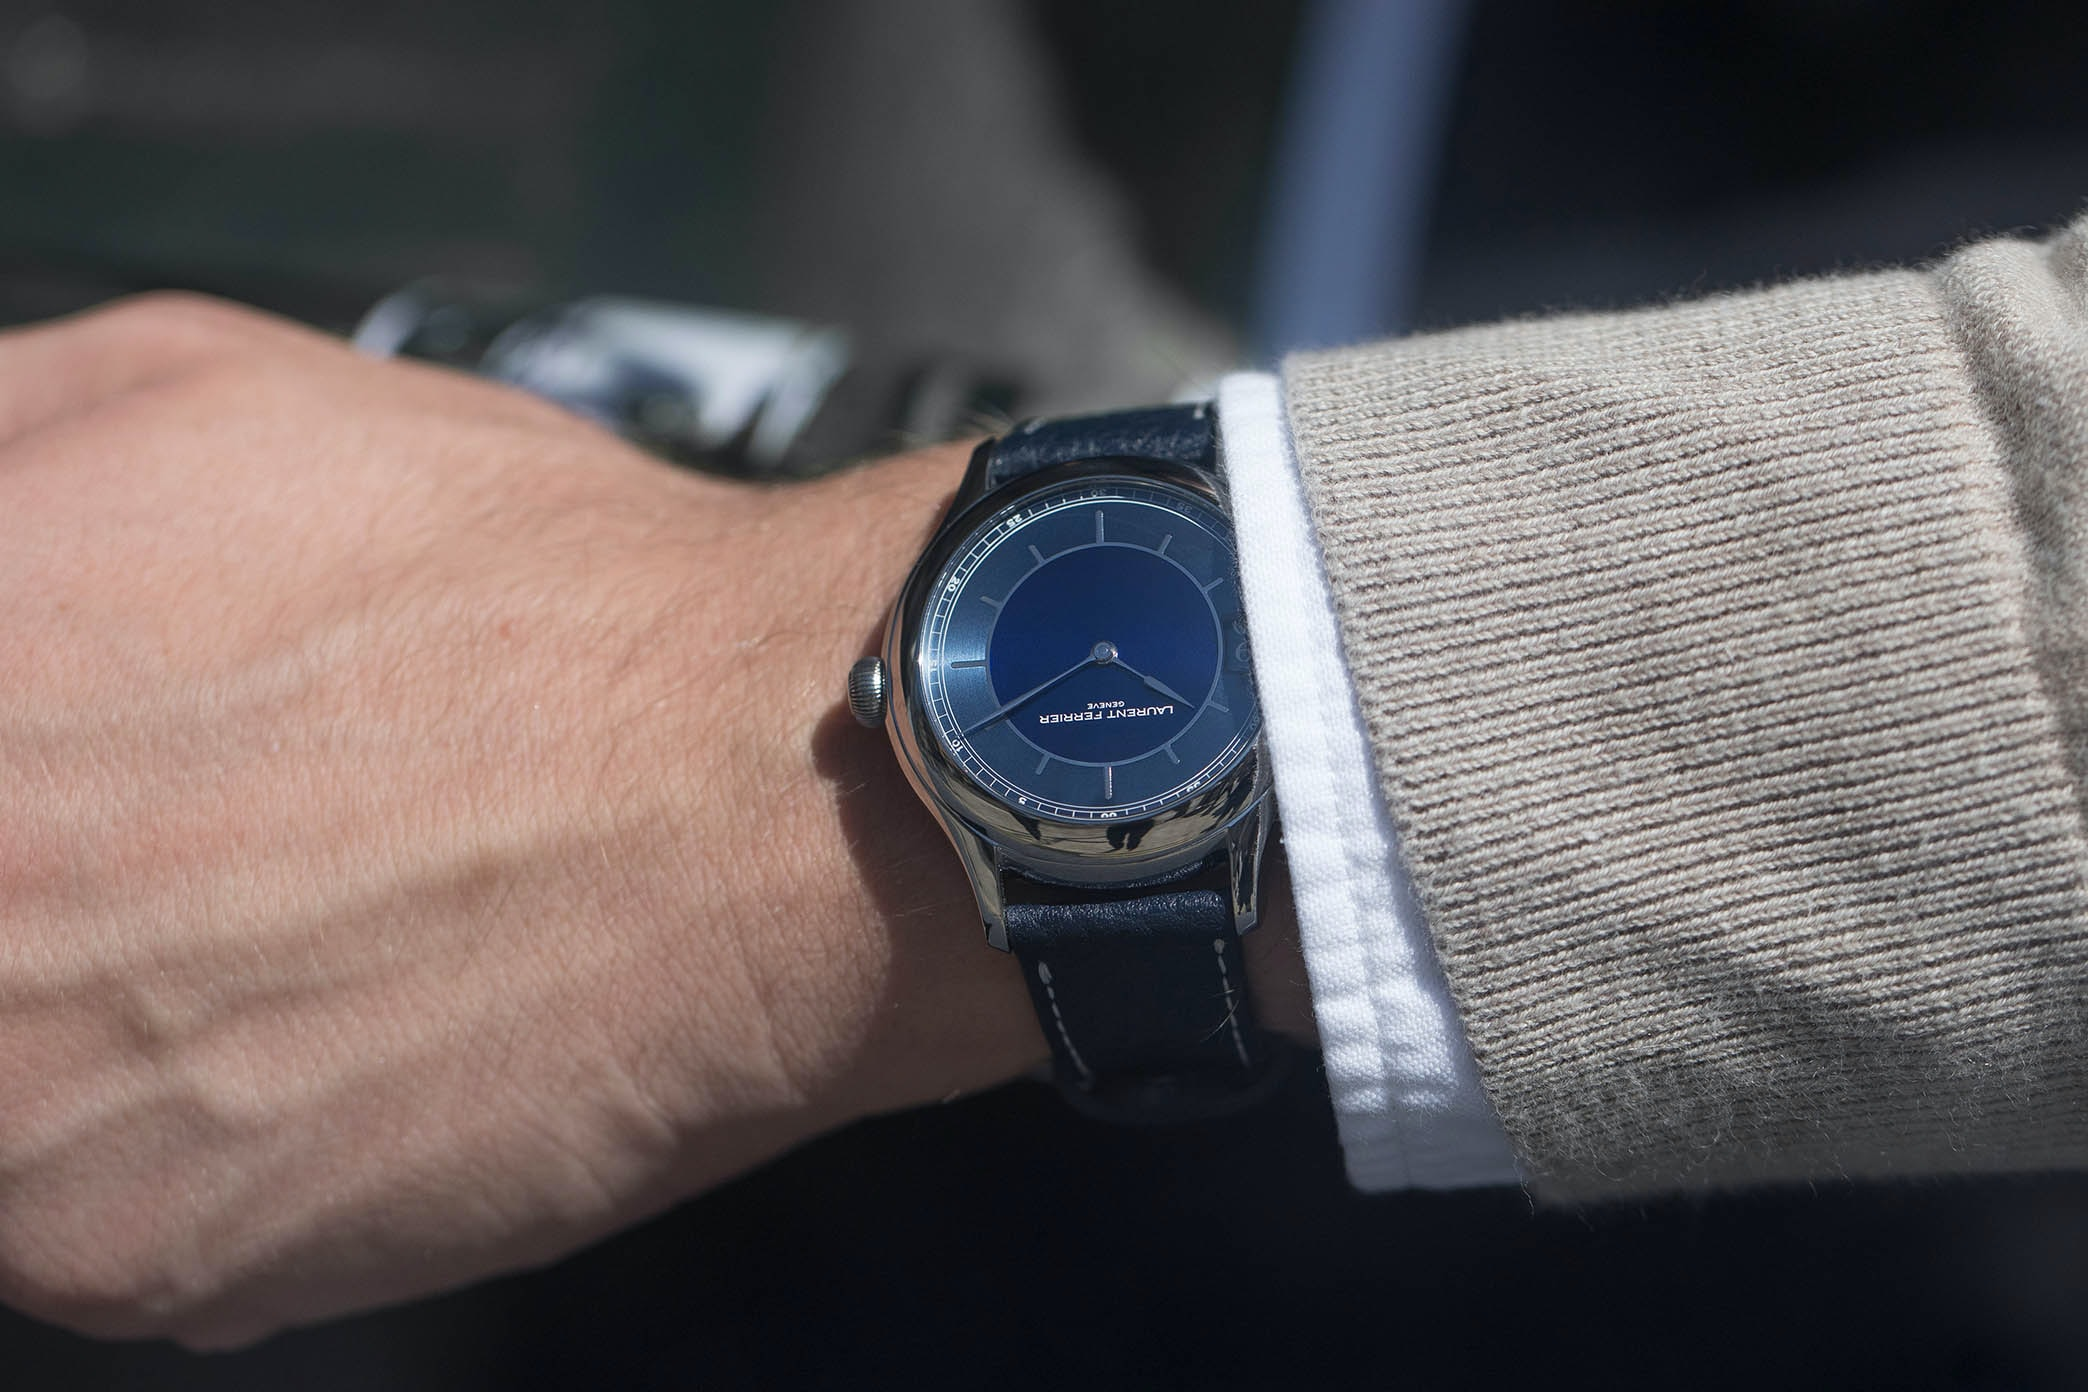 In The Shop: Introducing The Laurent Ferrier Traveller Limited Edition For HODINKEE In The Shop: Introducing The Laurent Ferrier Traveller Limited Edition For HODINKEE hodinkee 013